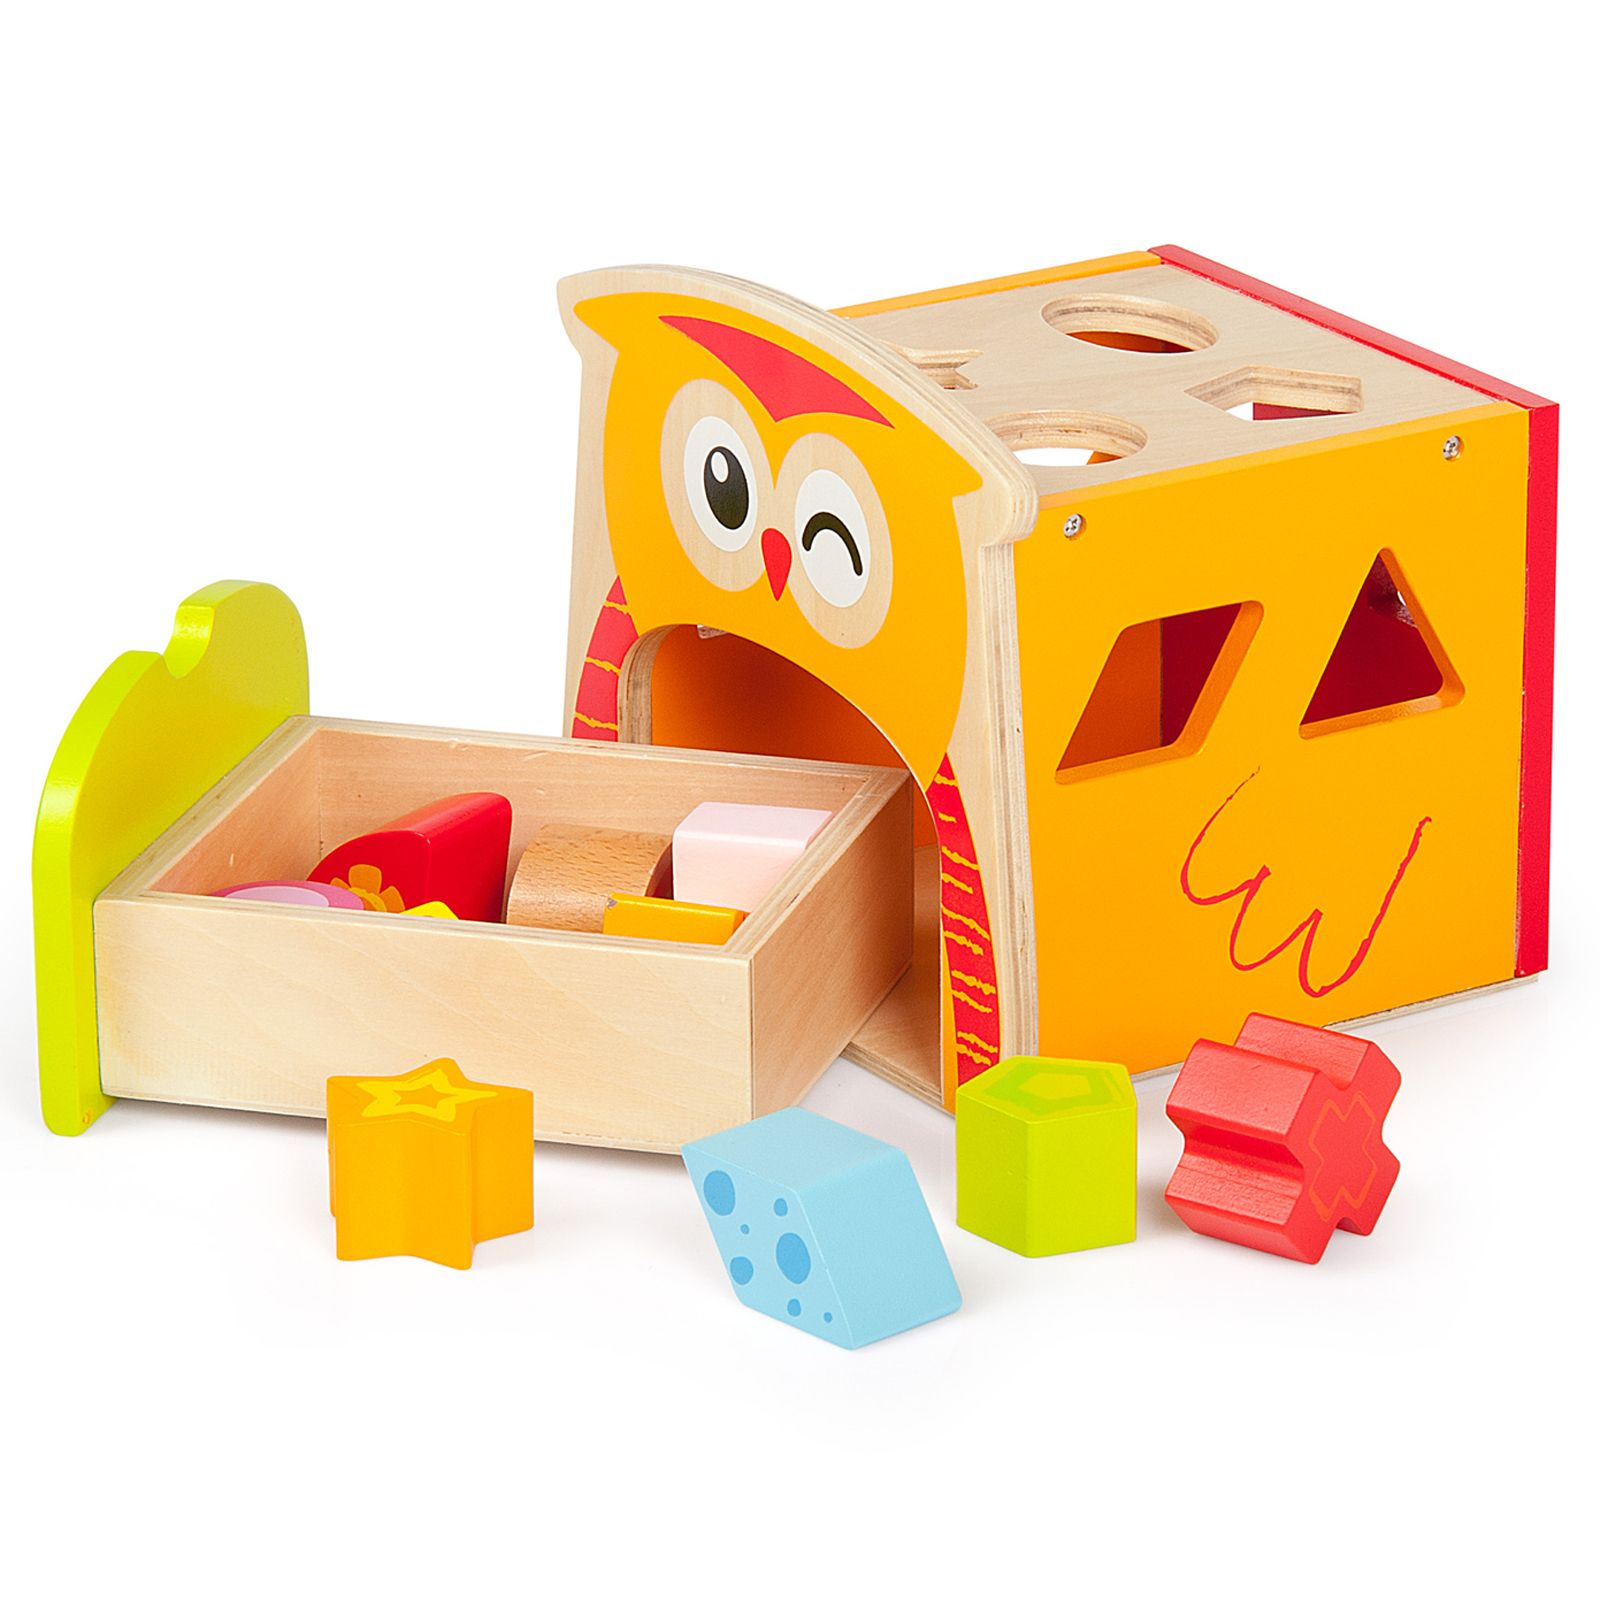 LEOMARK KIDS WOODEN TOYS EDUCATION LEARNING ACTIVITY TOYS 18